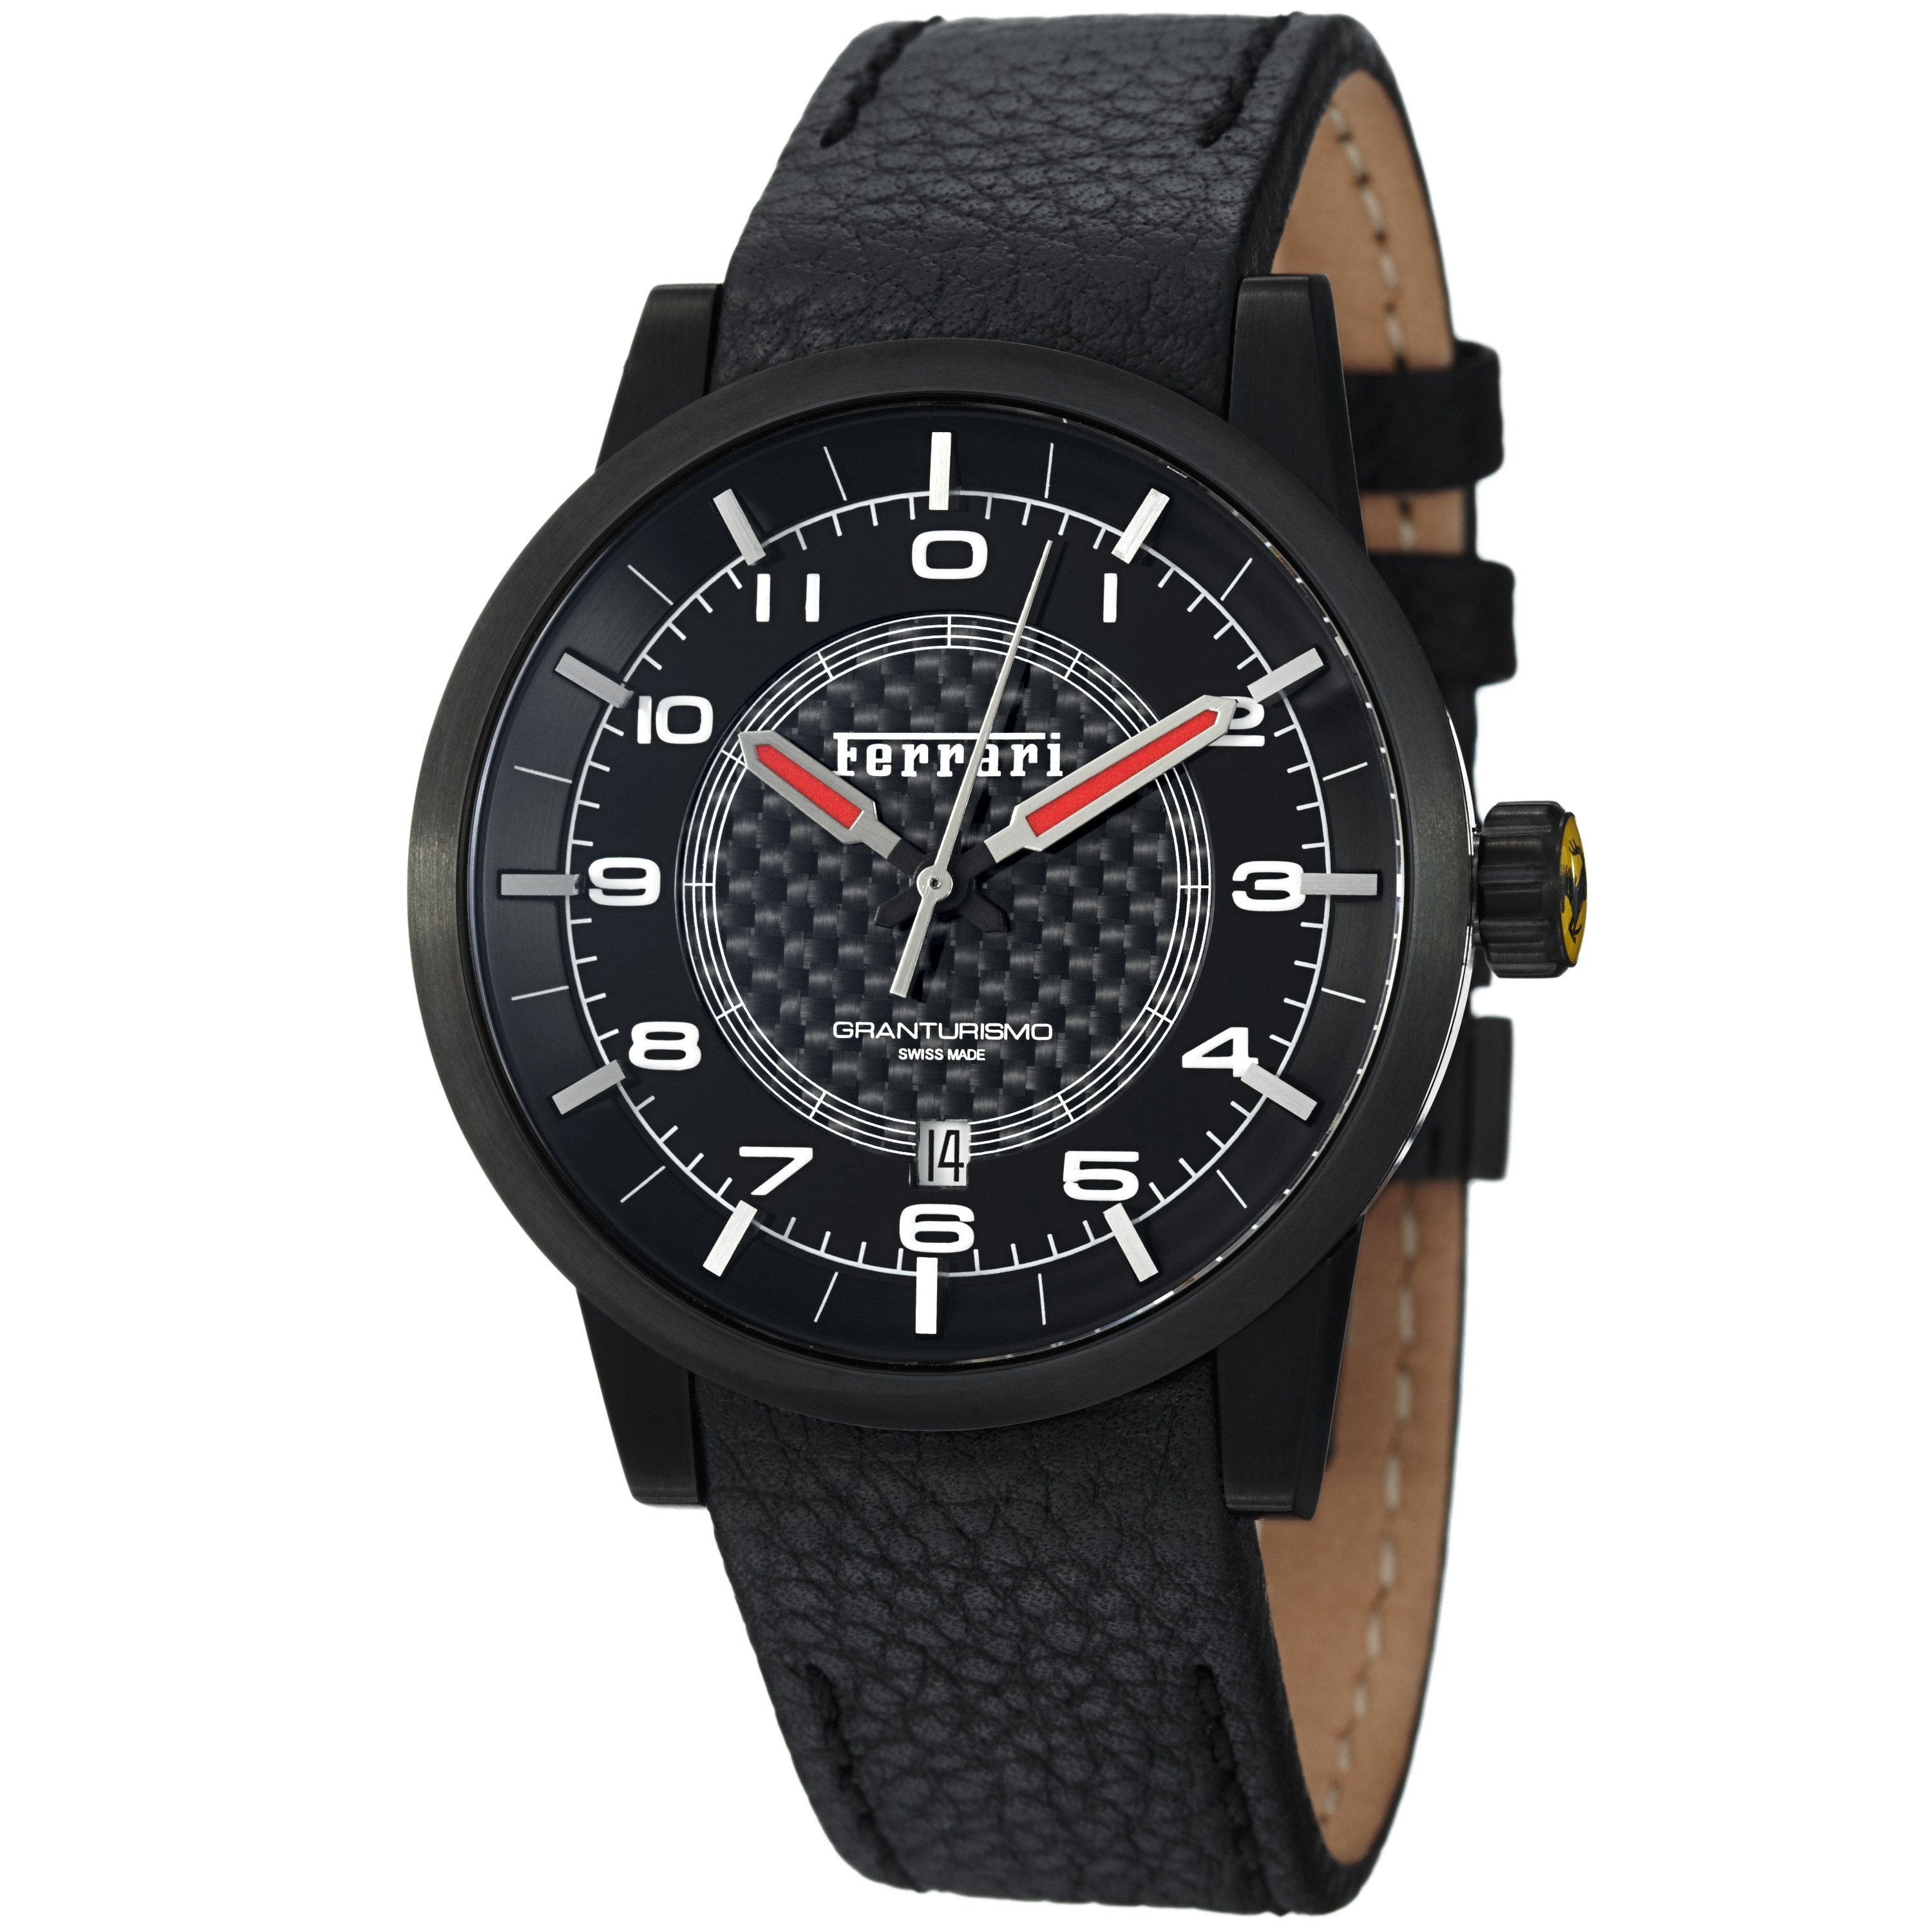 an for carbon model ceramic view bang watches replica angle particularly clear of dial big cheap at three good looking hublot it ferrari sale dimensional the construction s what offering a from is category online